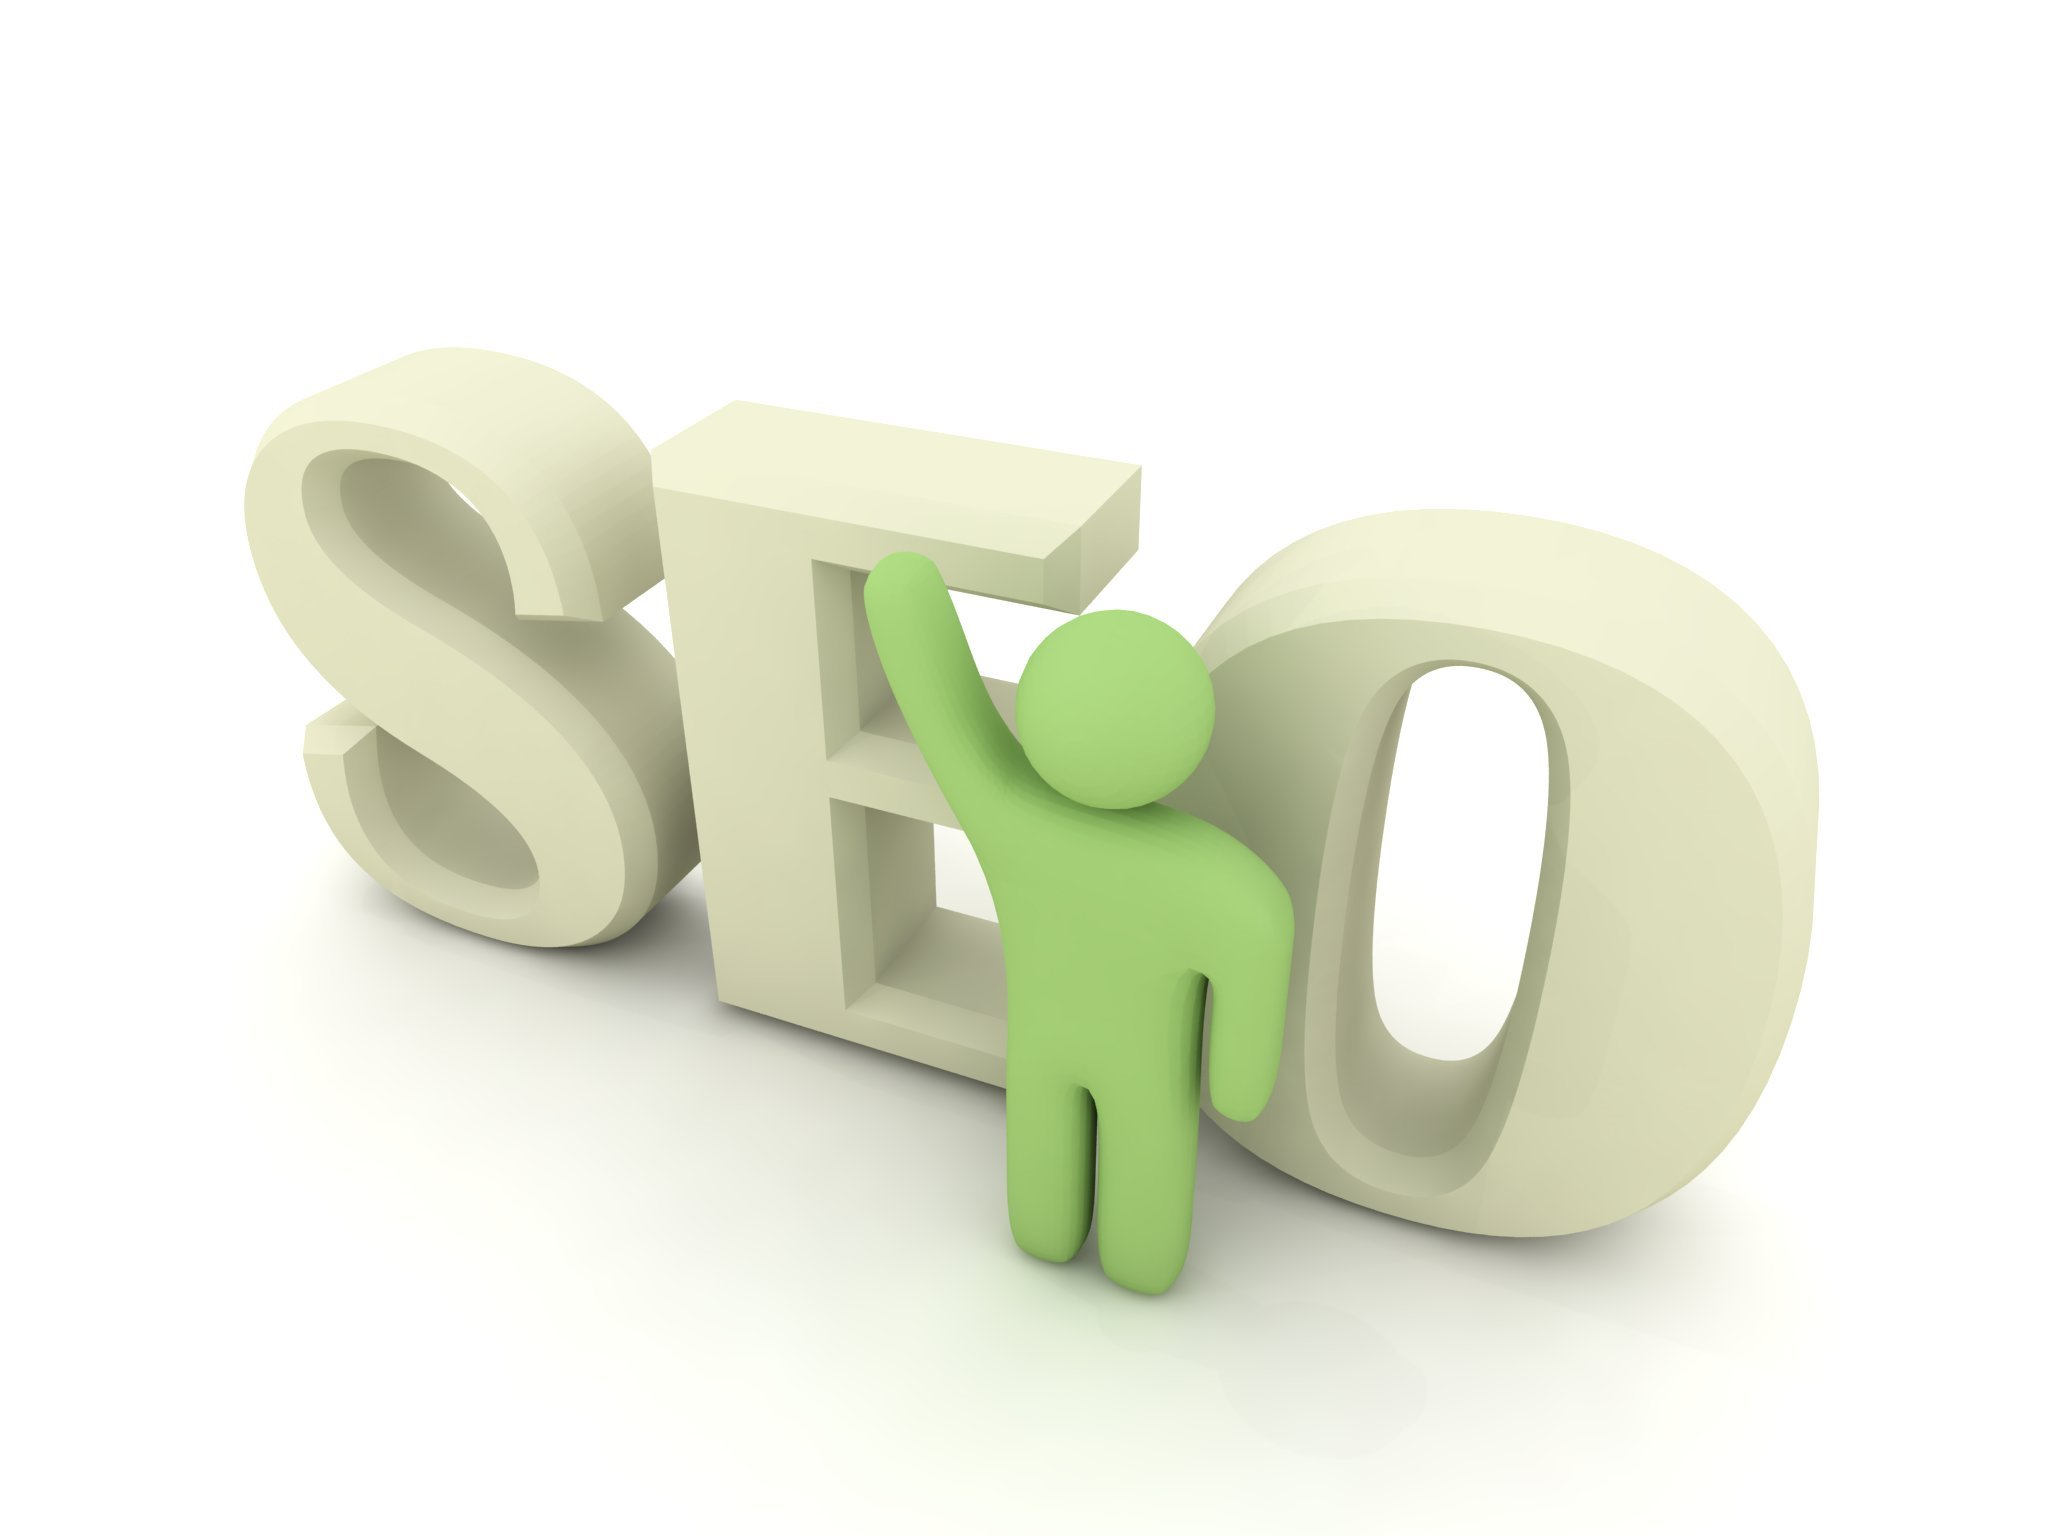 create minimum 200 profile backlink to get good SERP